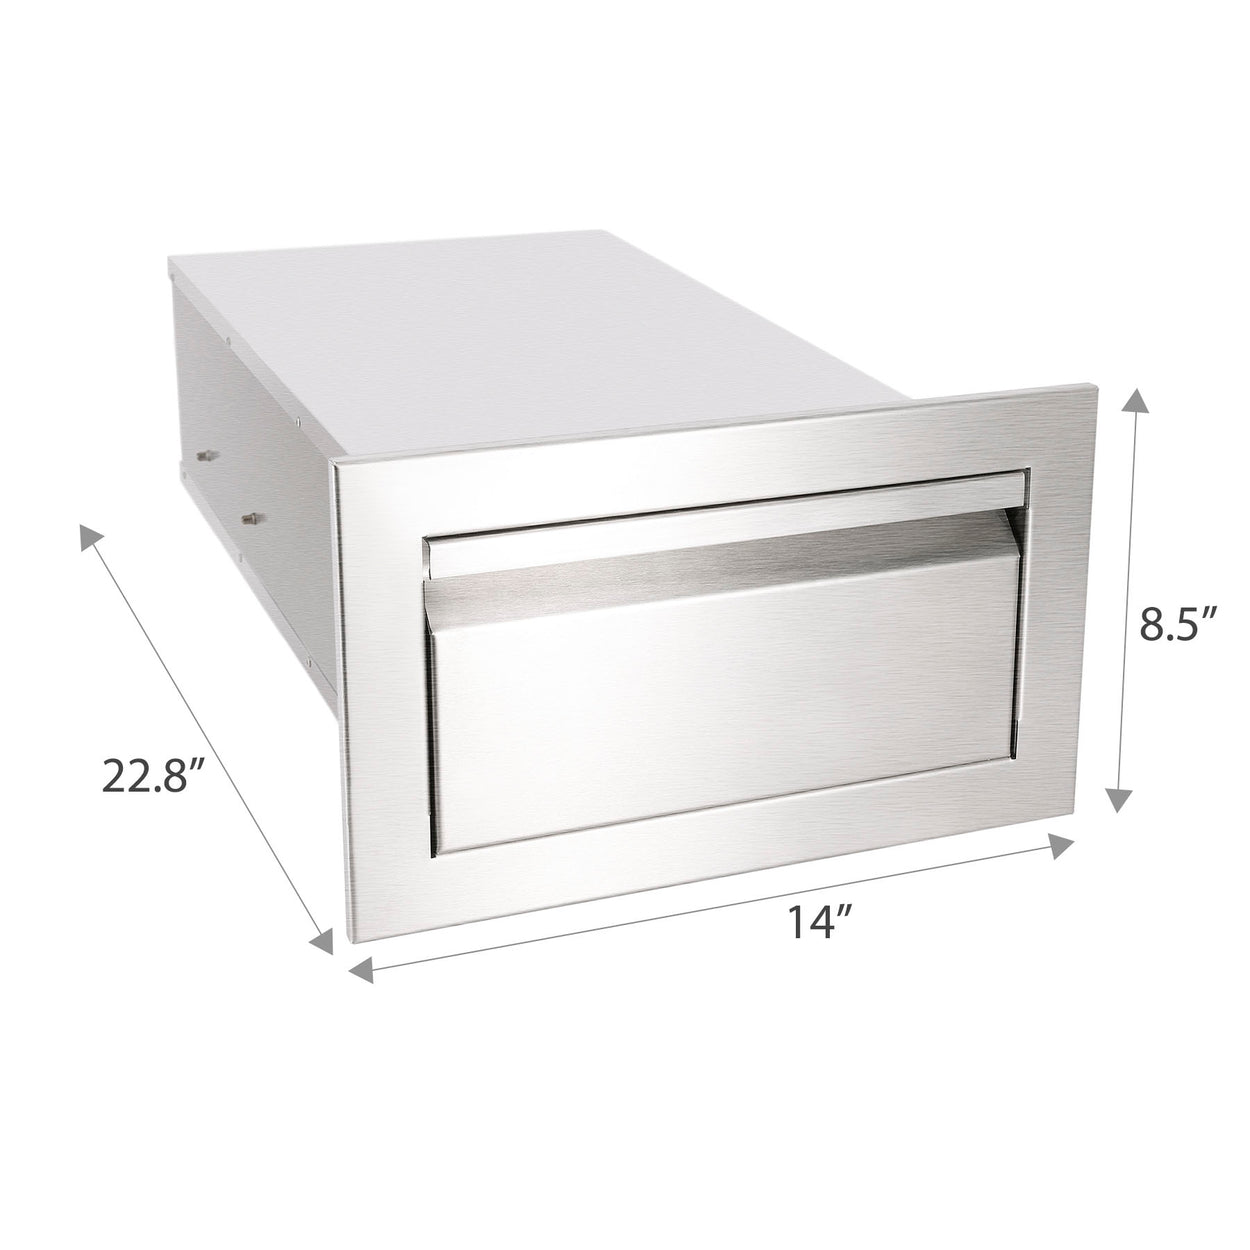 "14"" Outdoor Kitchen BBQ Island Stainless Steel Access Drawer Single Worktable"